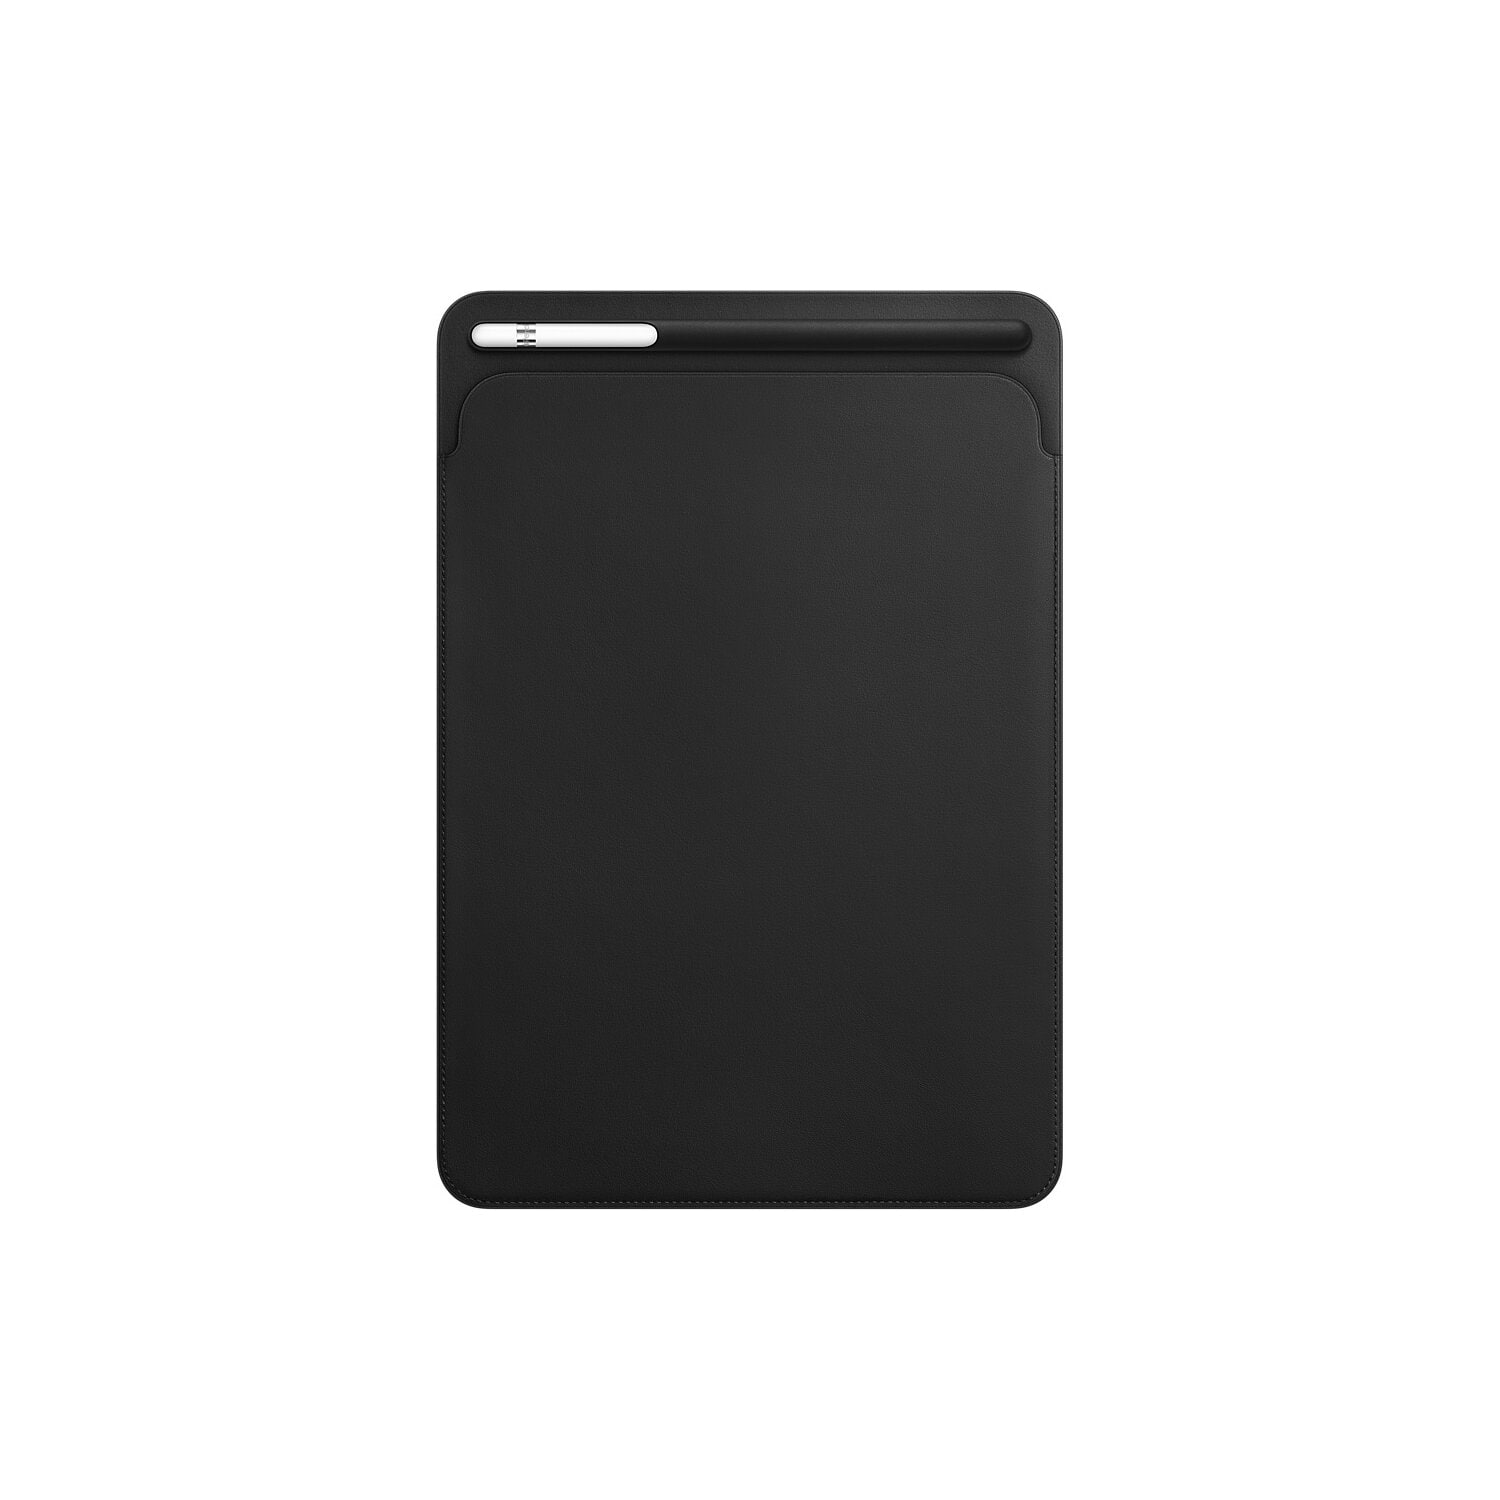 Etui APPLE Leather Sleeve do Apple iPad Pro 10,5 cala Czarny MPU62ZM/A